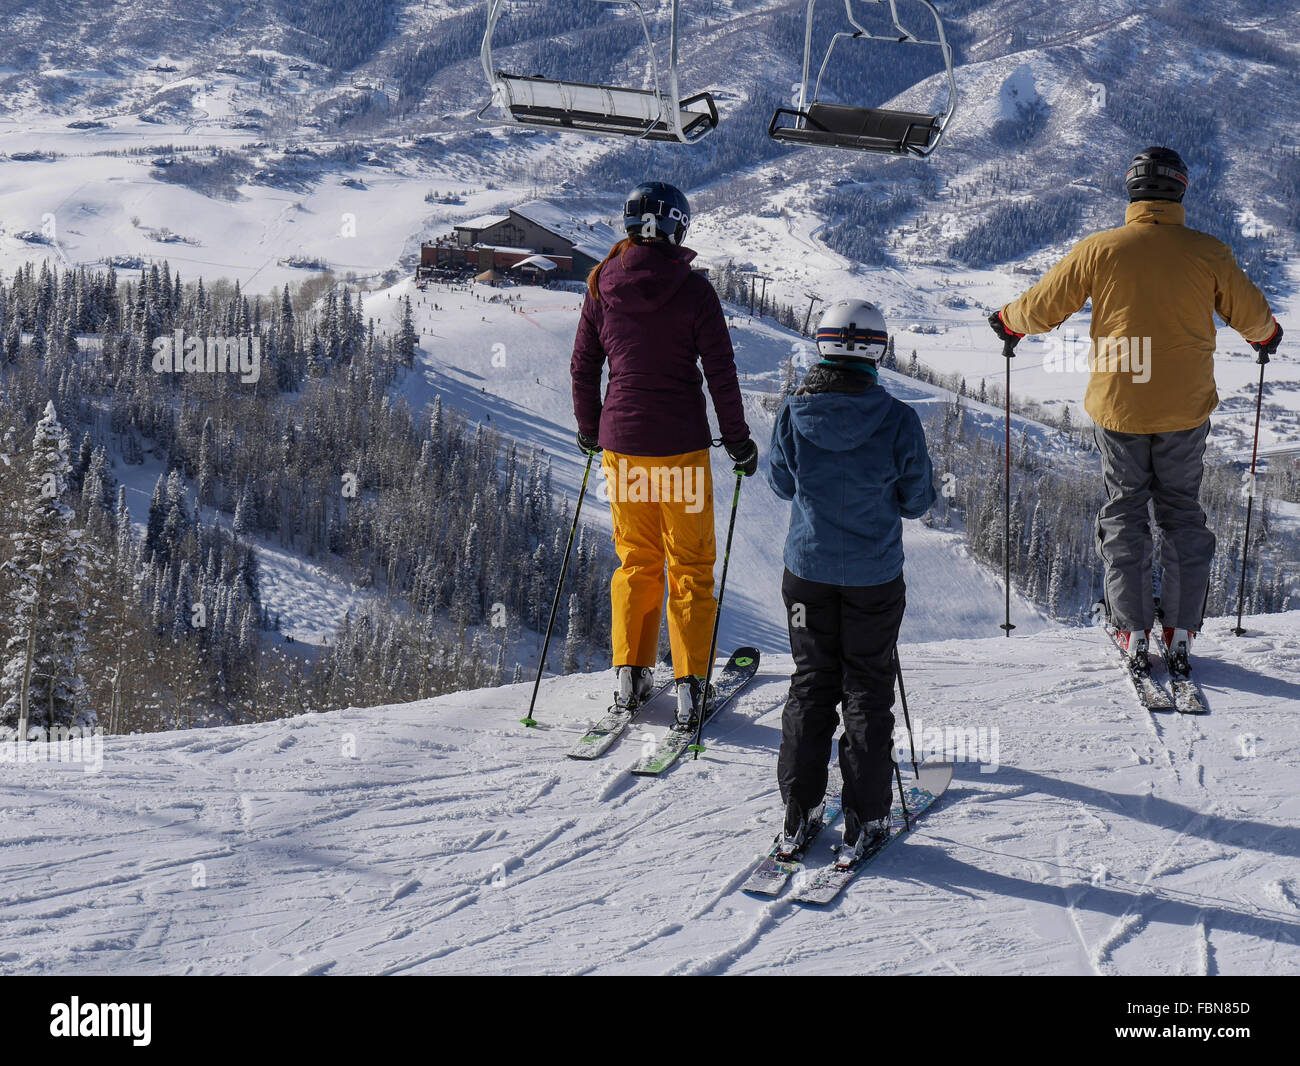 Skiers overlooking Thunderhead Lodge from Four Points Lodge, Steamboat Ski Resort, Steamboat Springs, Colorado. - Stock Image